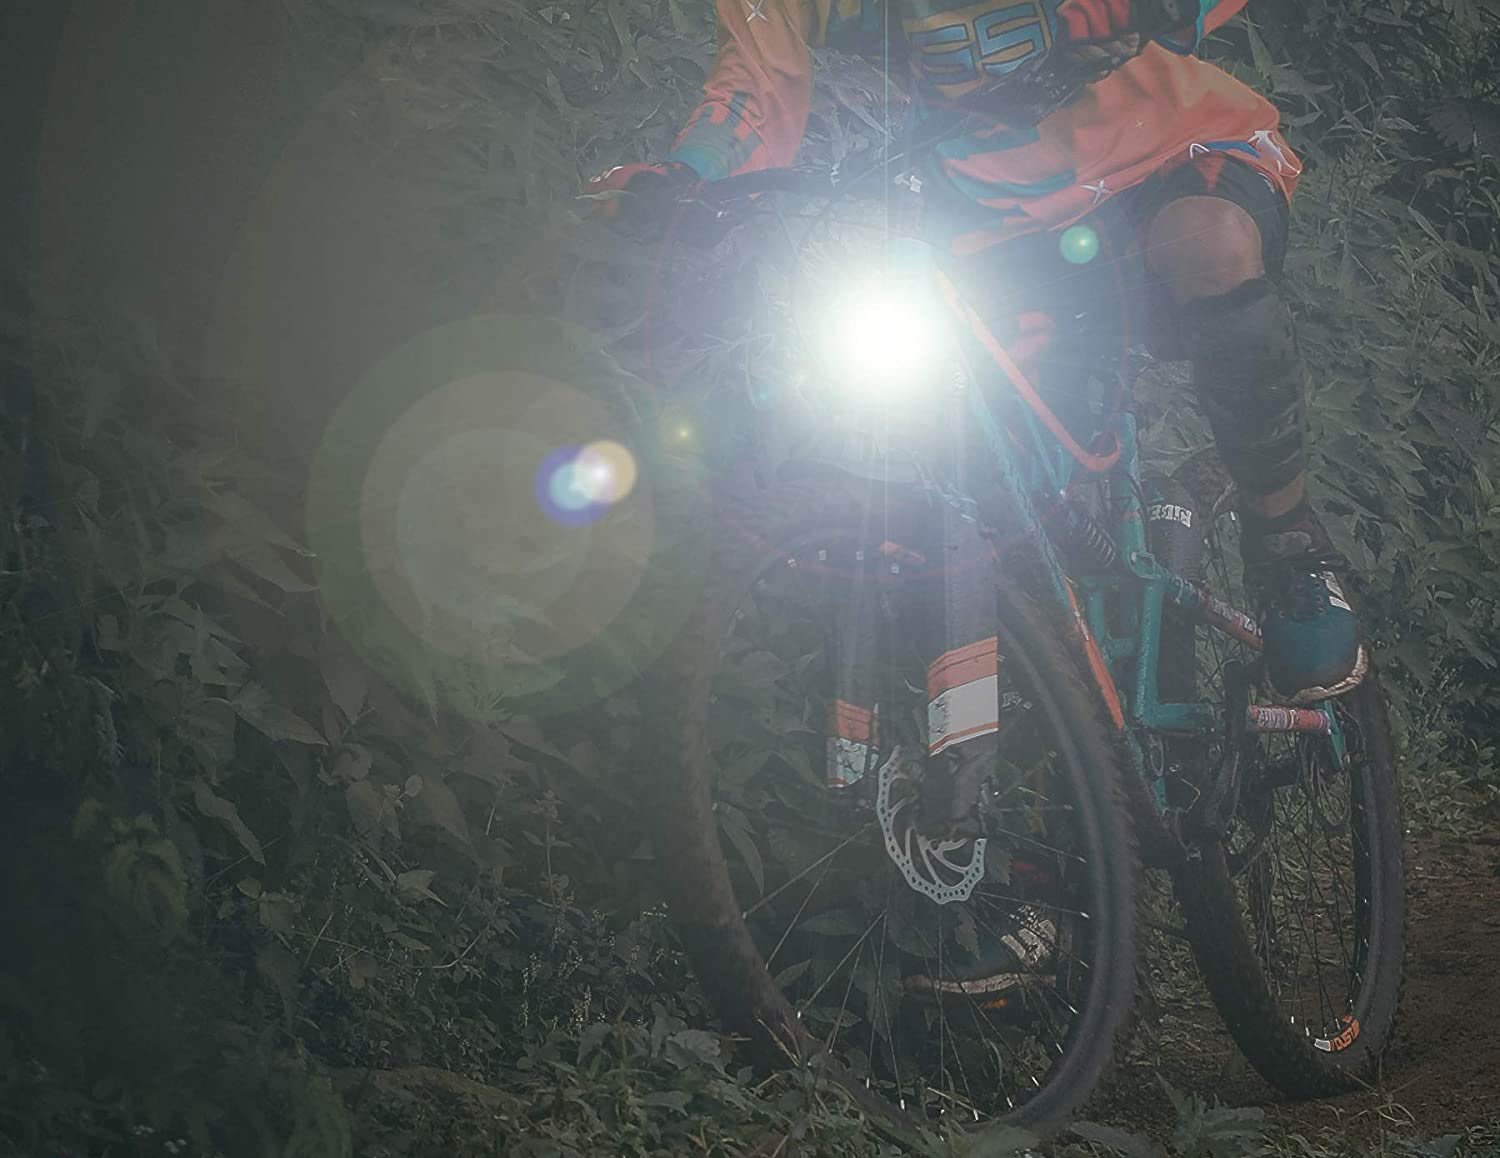 Person riding a bike at night